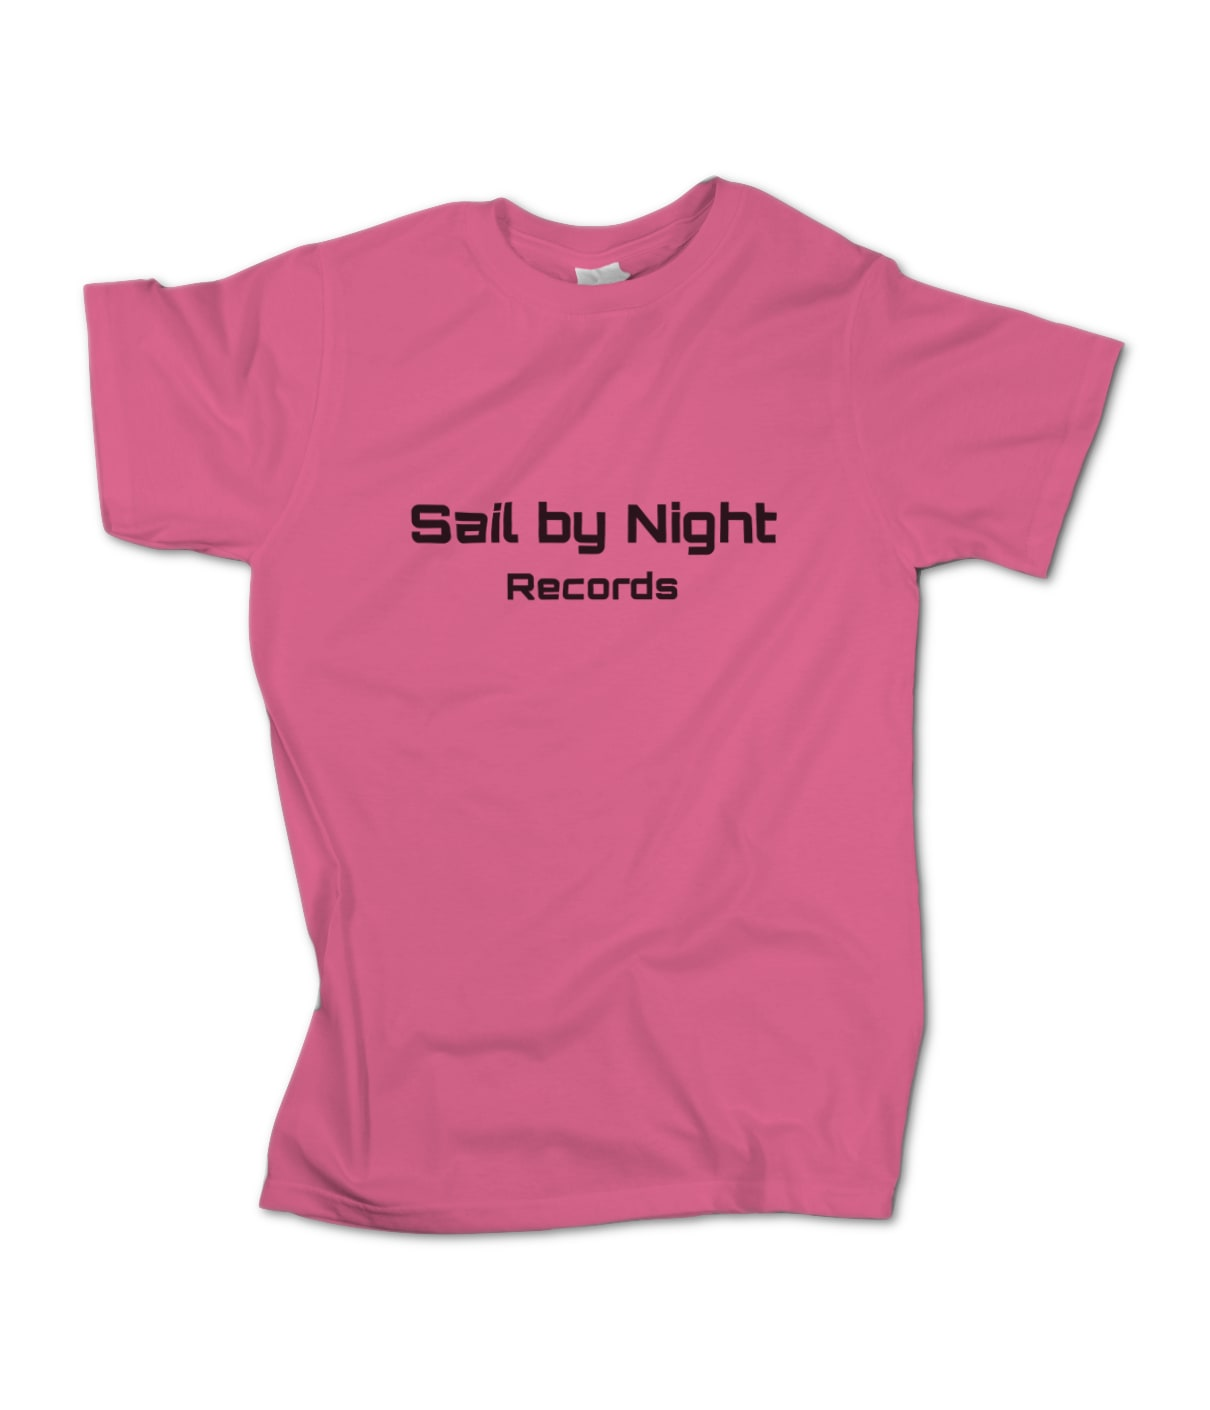 Sail by night sail by night records 1545264361